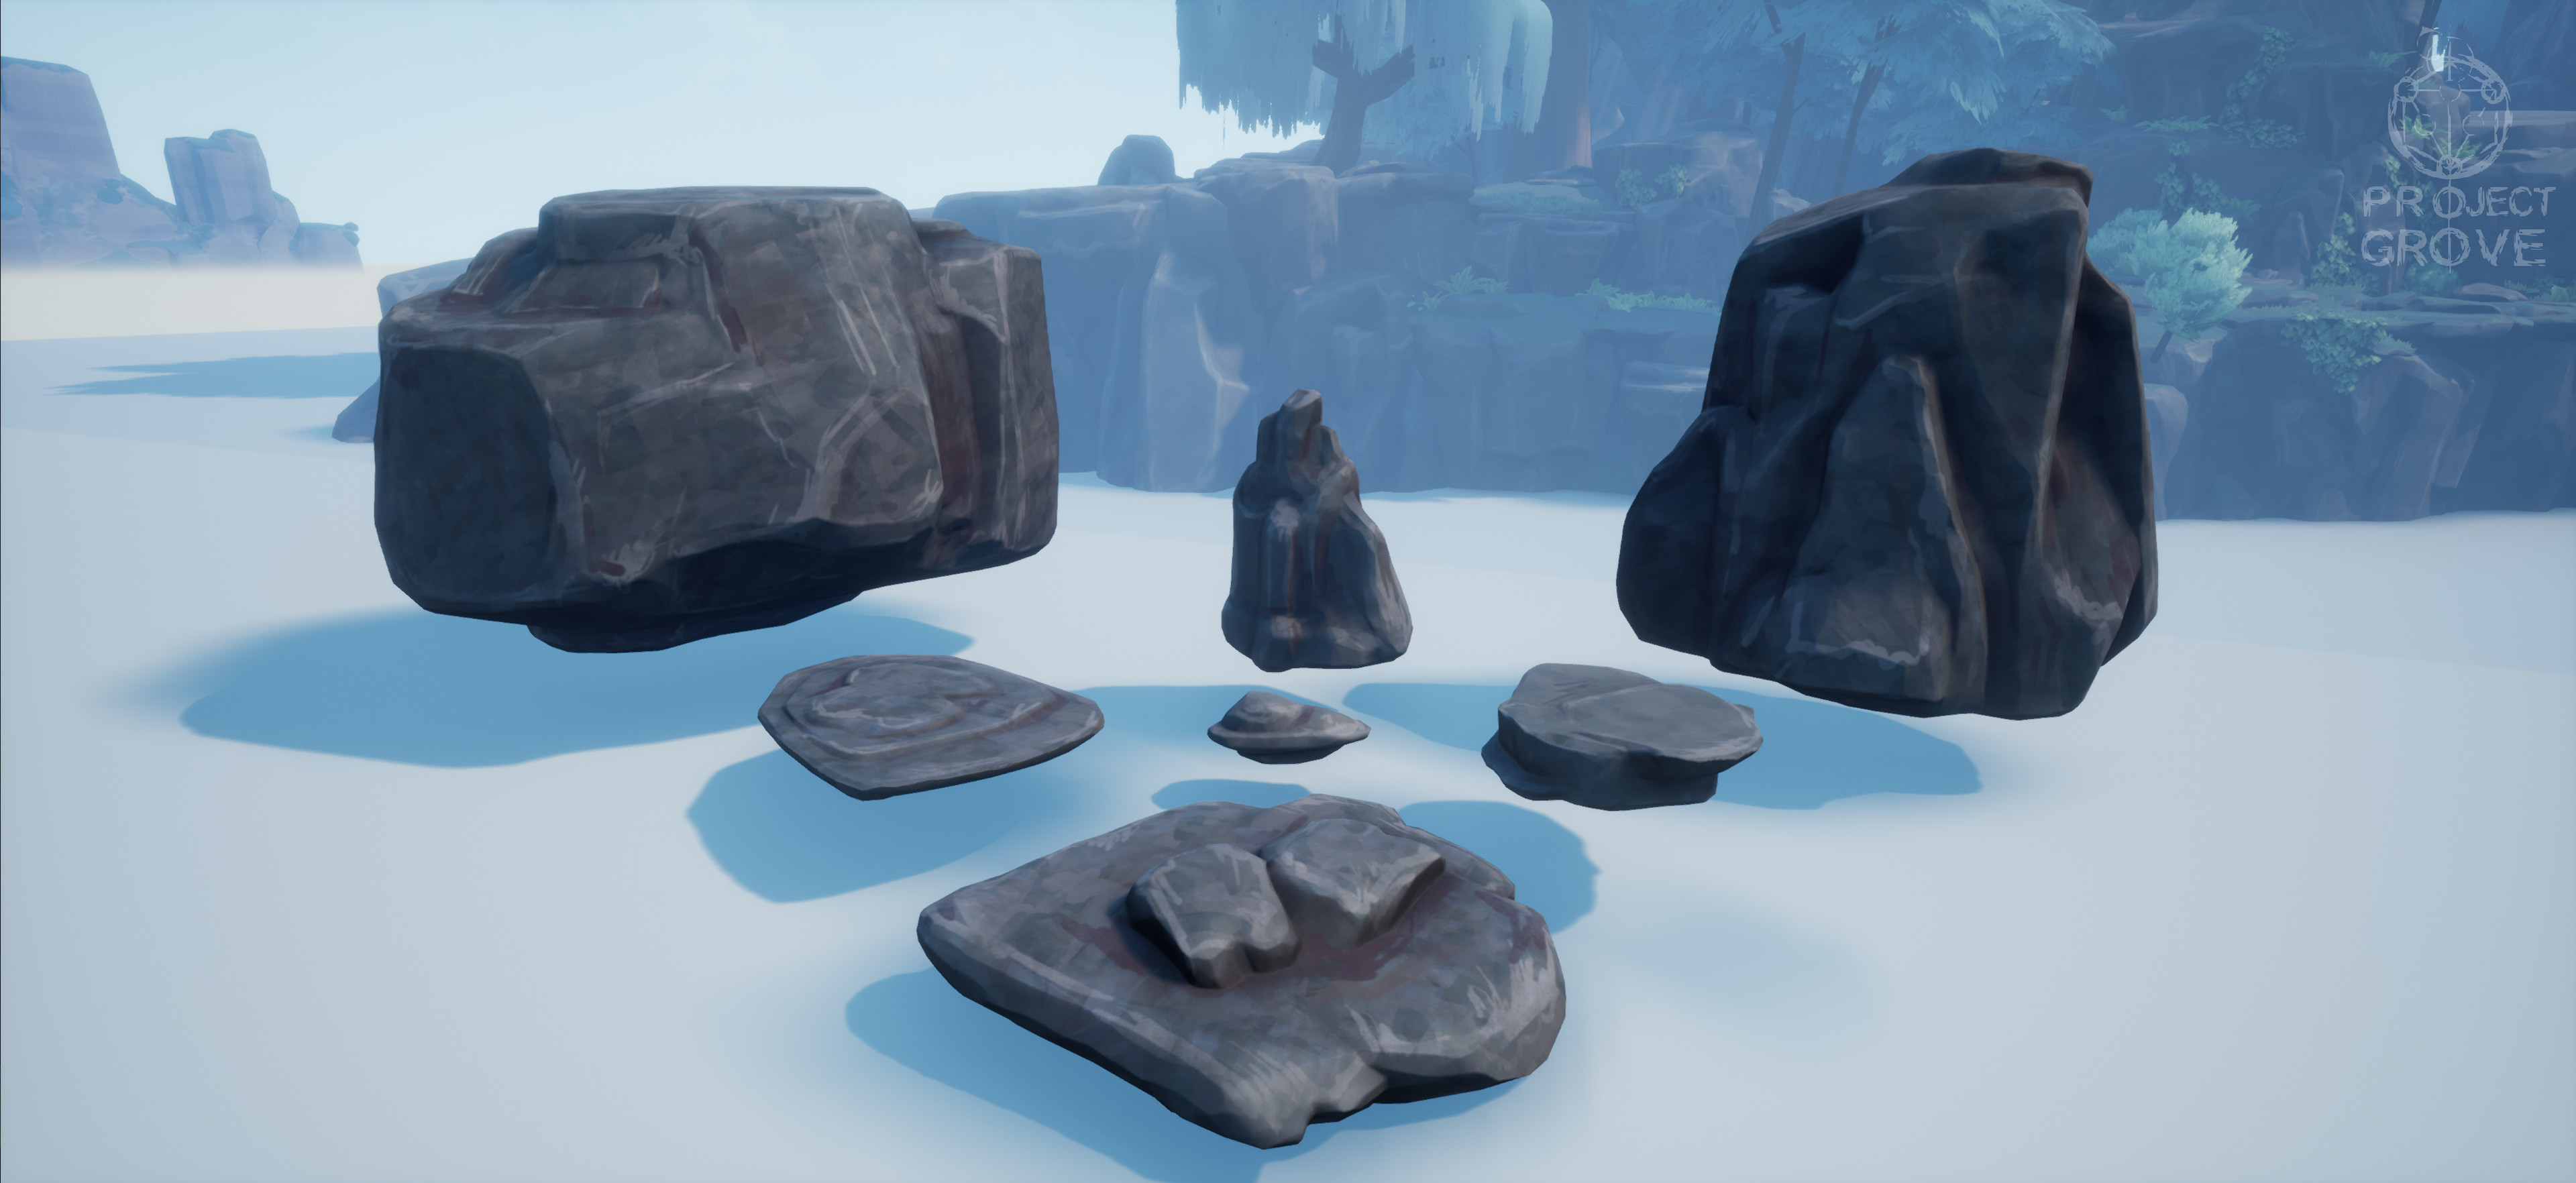 Rock set: each rock has a specific purpose and is designed in a certain way. You have big fillers with simple shapes to block out large areas, flat rocks for floors and ceilings and smaller rocks to create detail around player height.